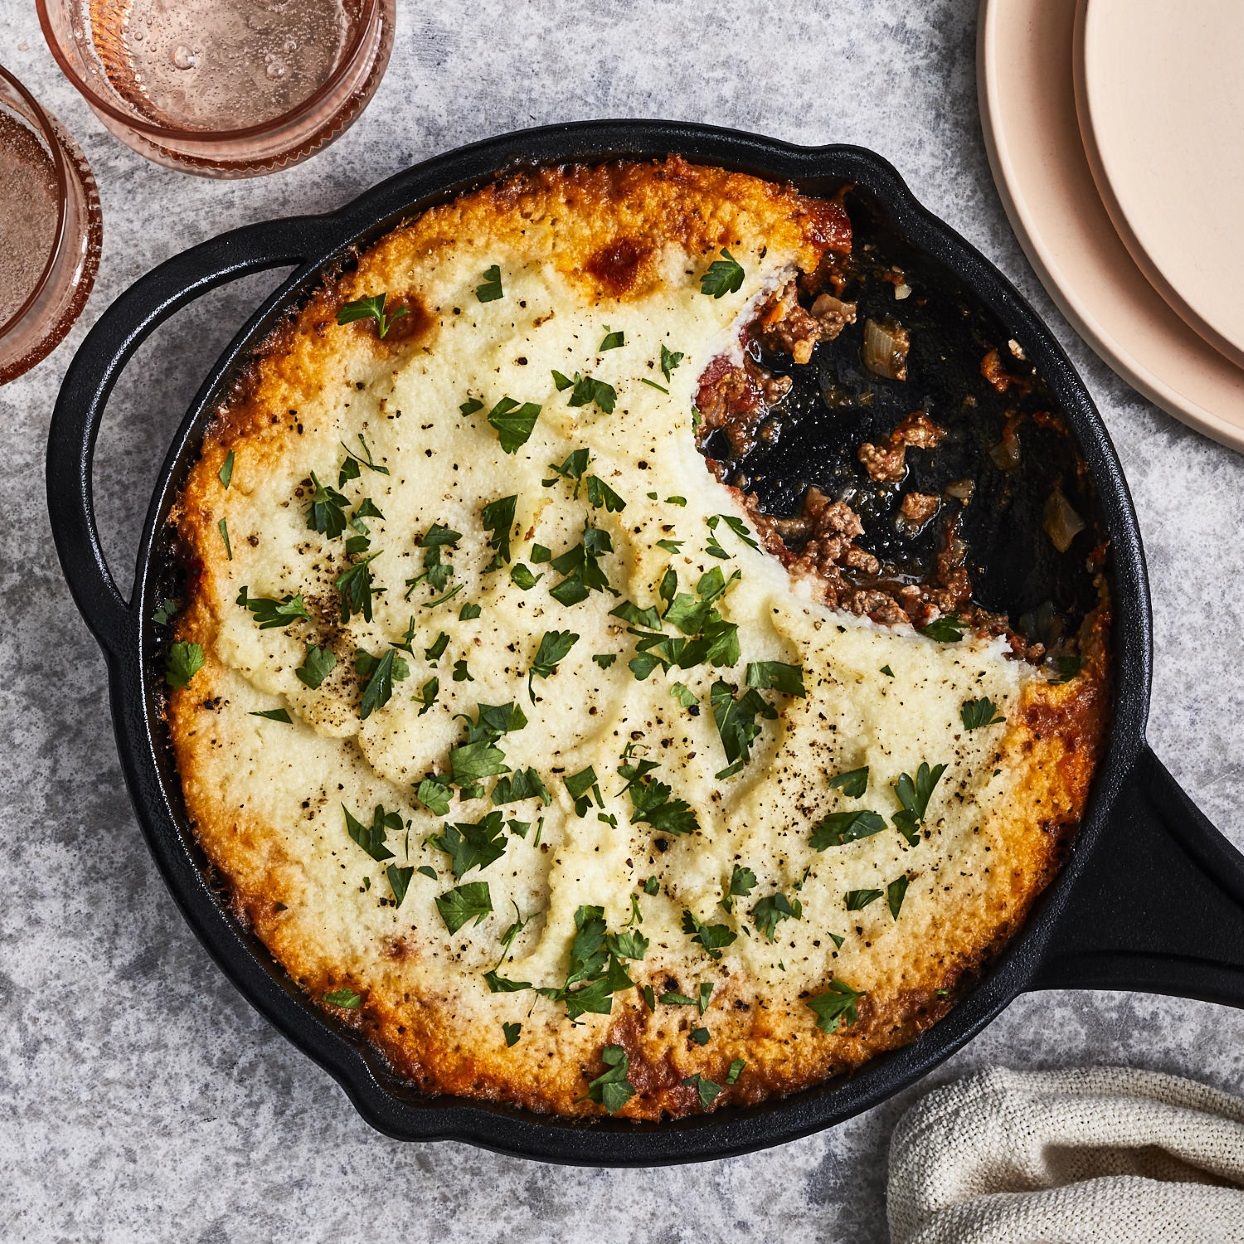 In this easy shepherd's pie recipe, we keep the carbs in check by using creamy mashed cauliflower in place of mashed potatoes. The ground beef filling is cooked in the same skillet used for baking the pie, making assembly (and cleanup) a breeze. Source: EatingWell.com, January 2020